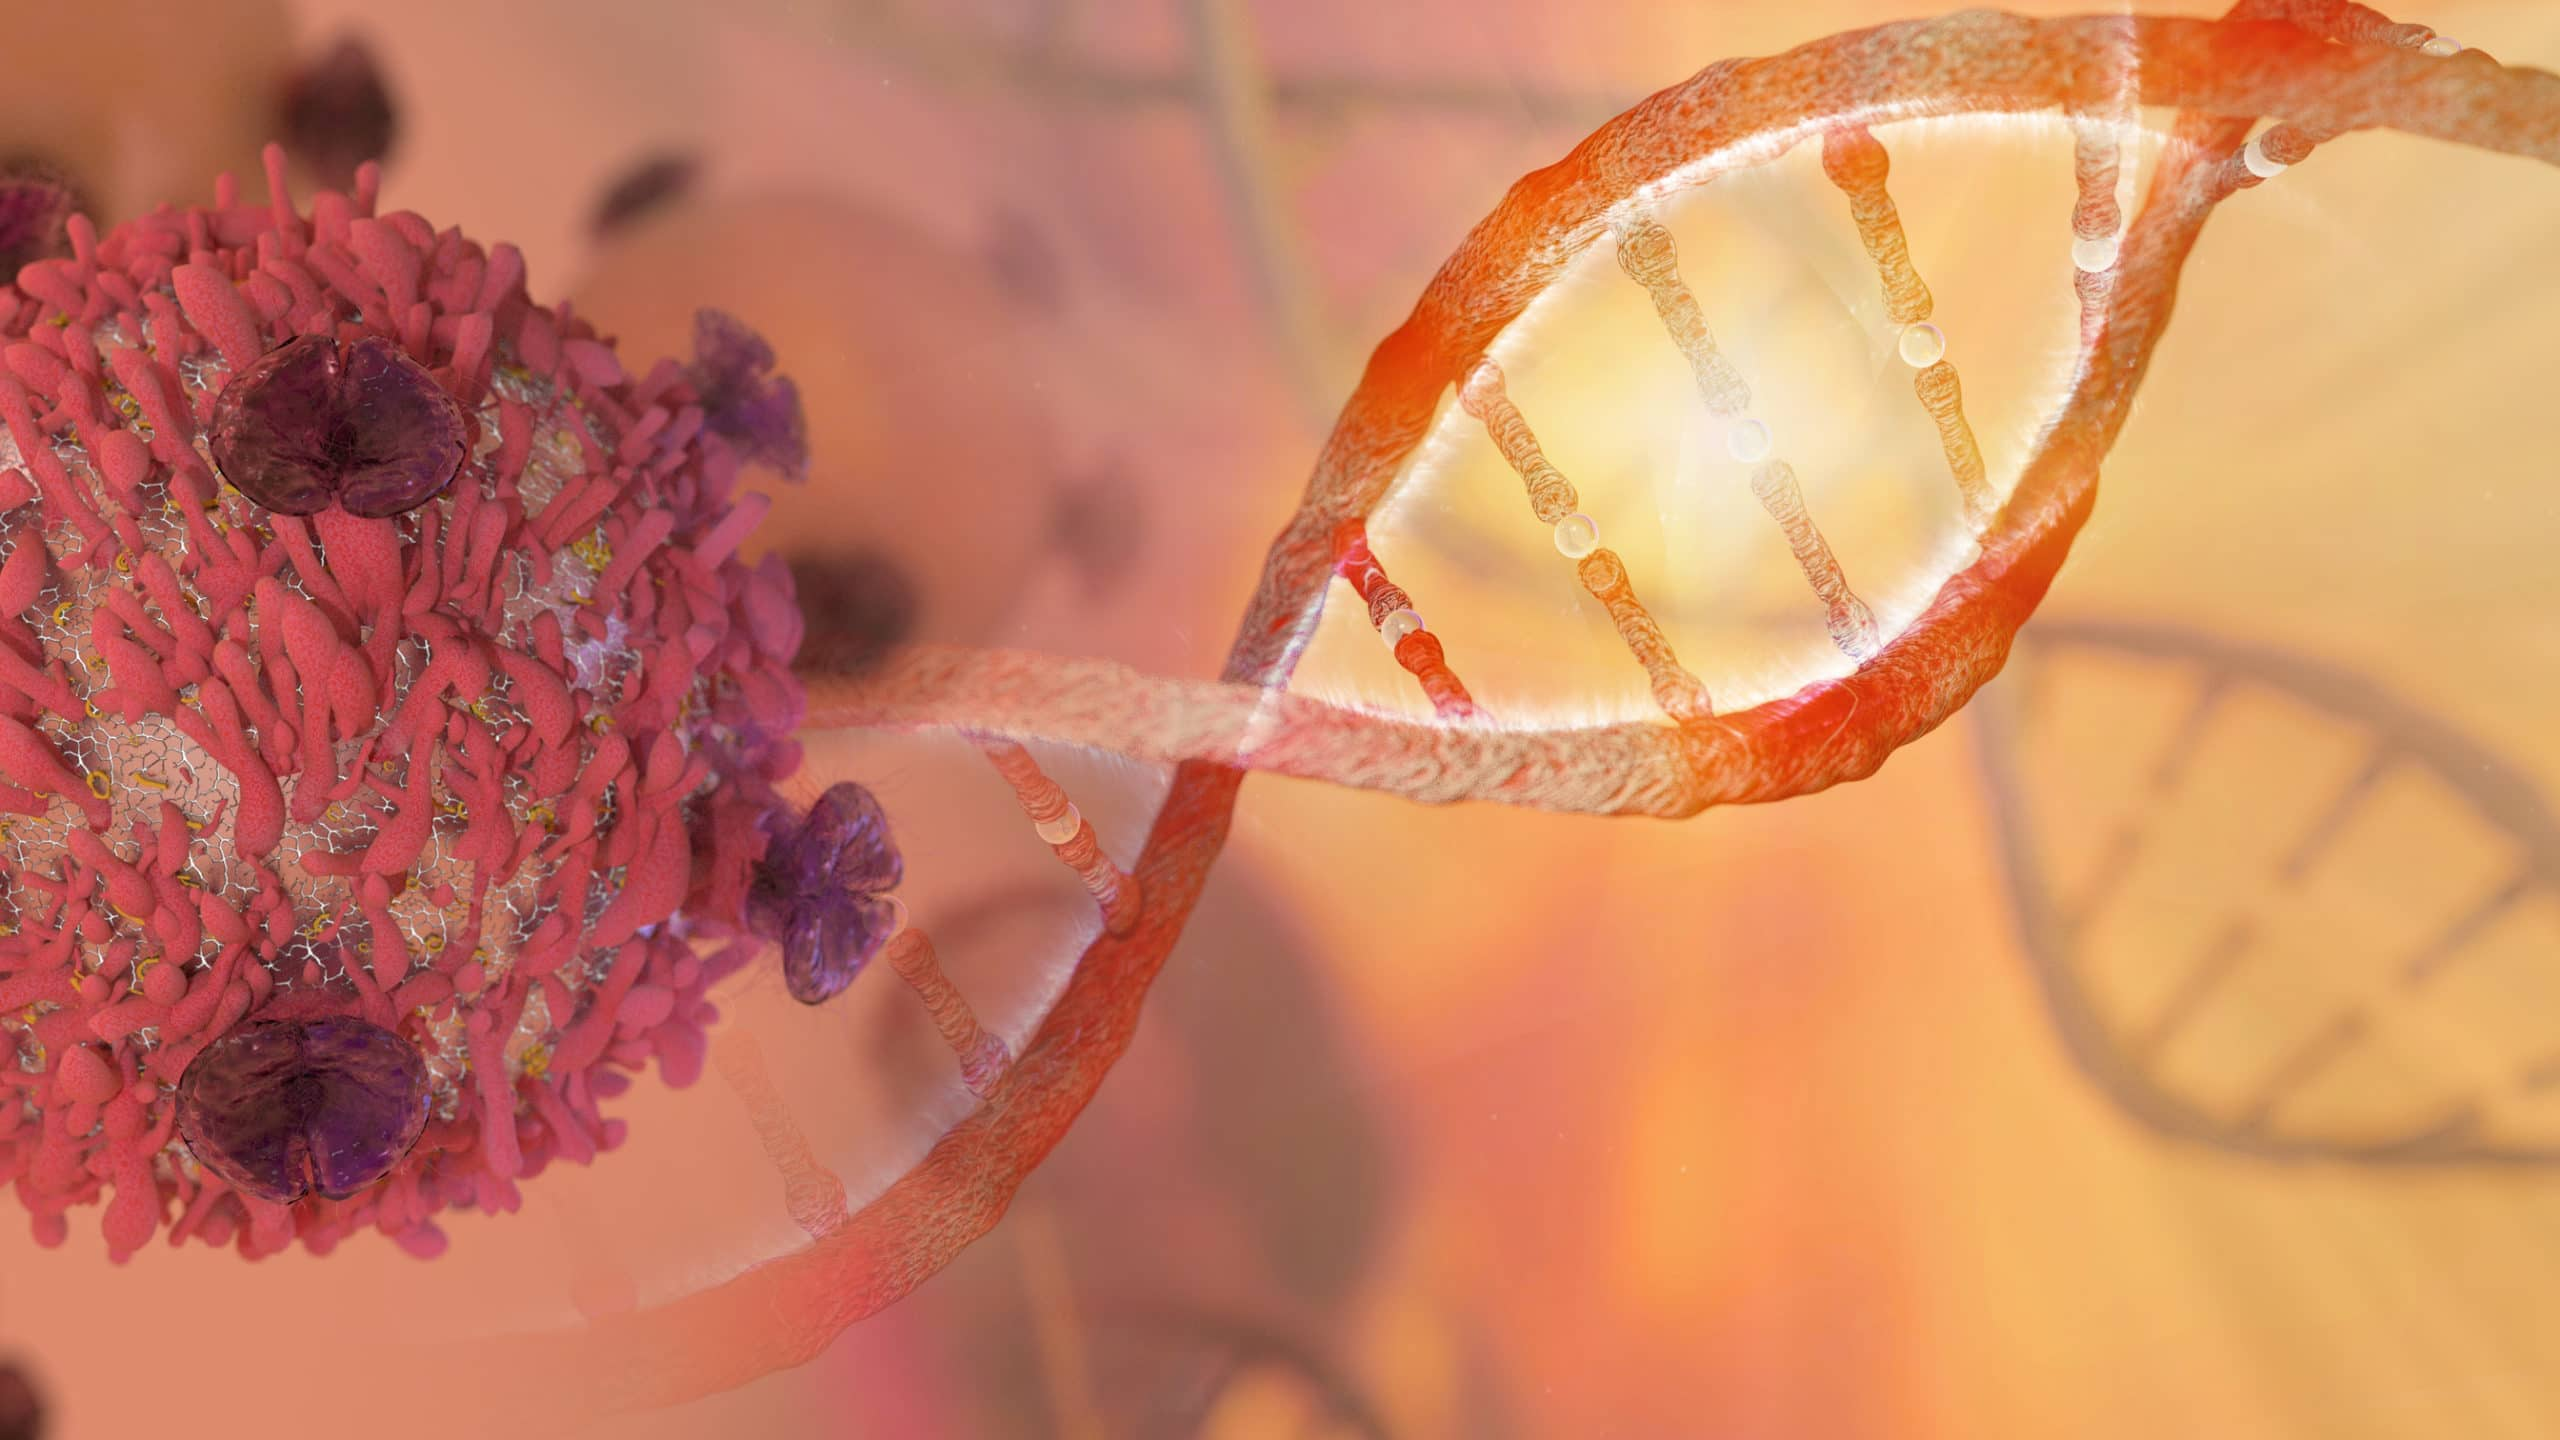 Blue Matter Consulting - DNA Strand and Cancer Cell - Oncology Cell Therapy